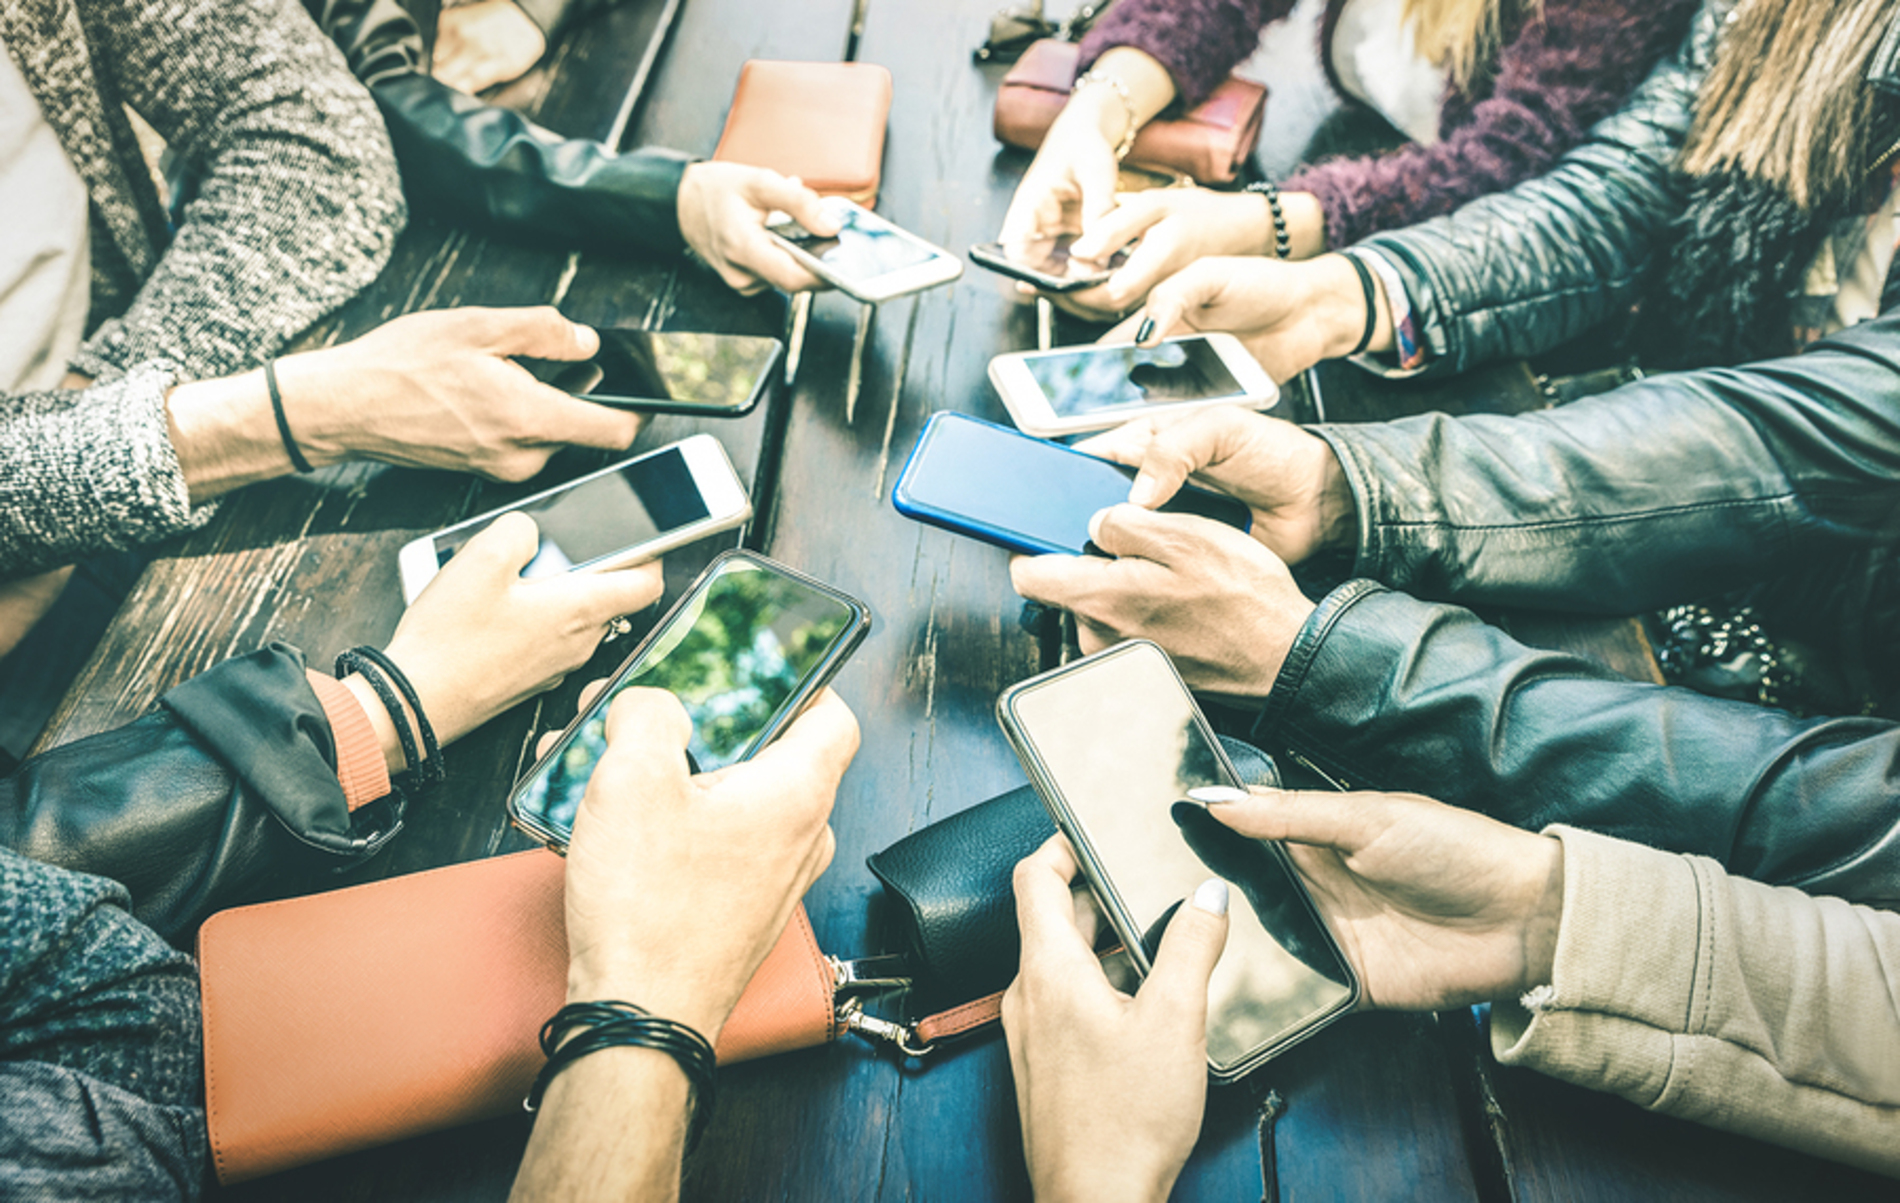 Group of people sitting around a table using their phones.